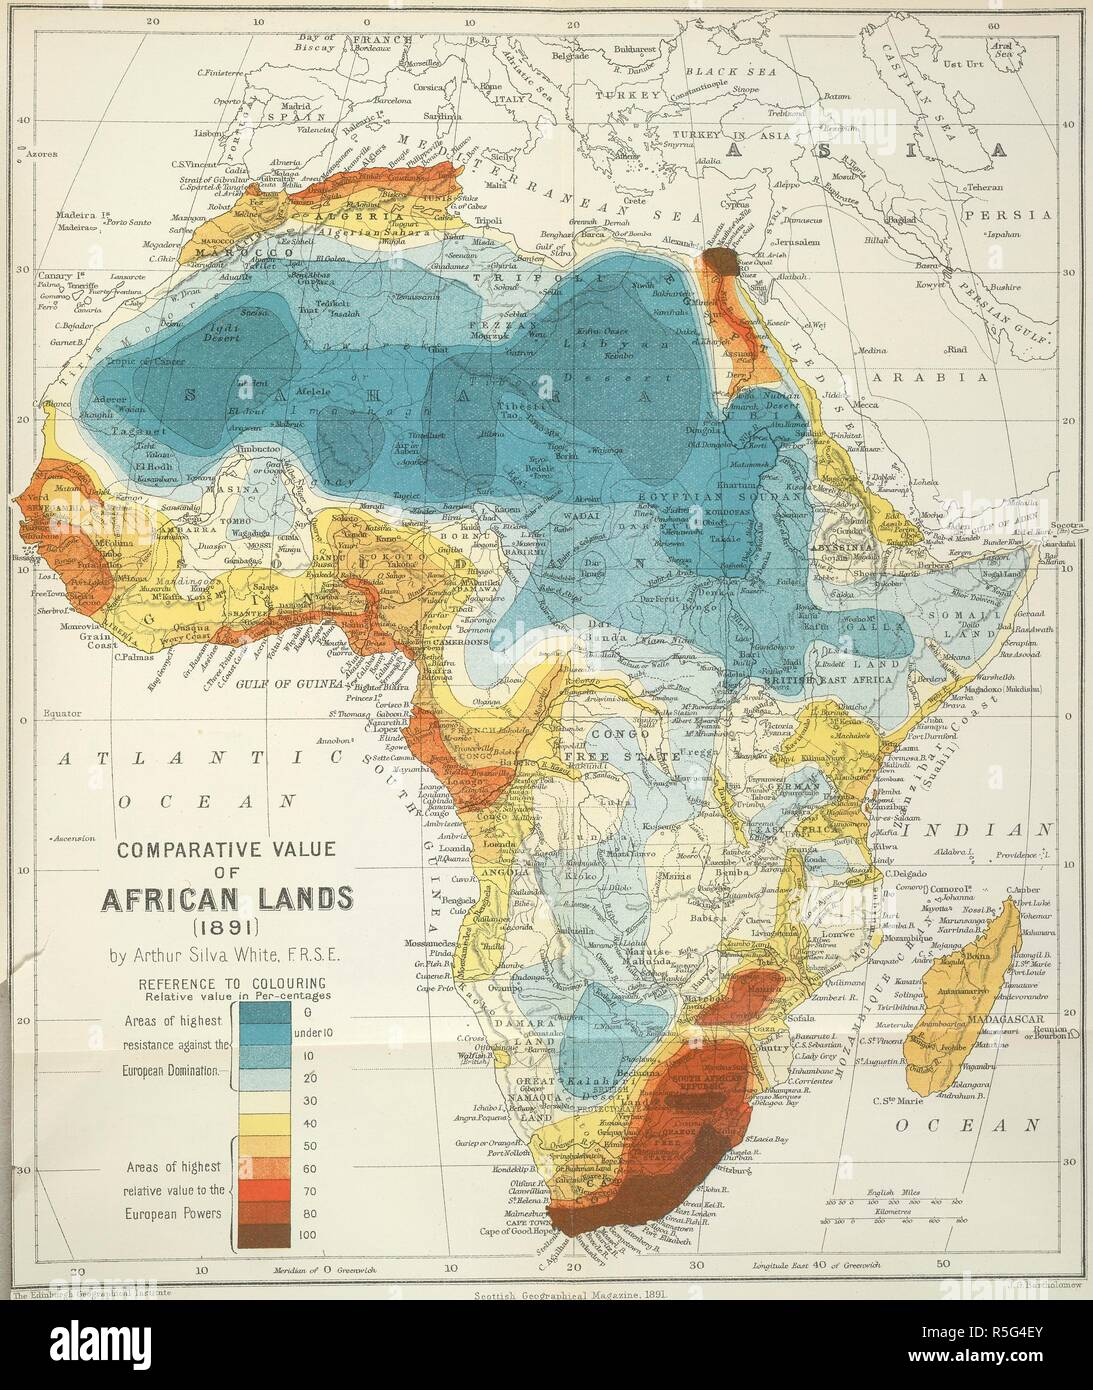 Africa. Comparative value of African lands (1891). 1891. A ...